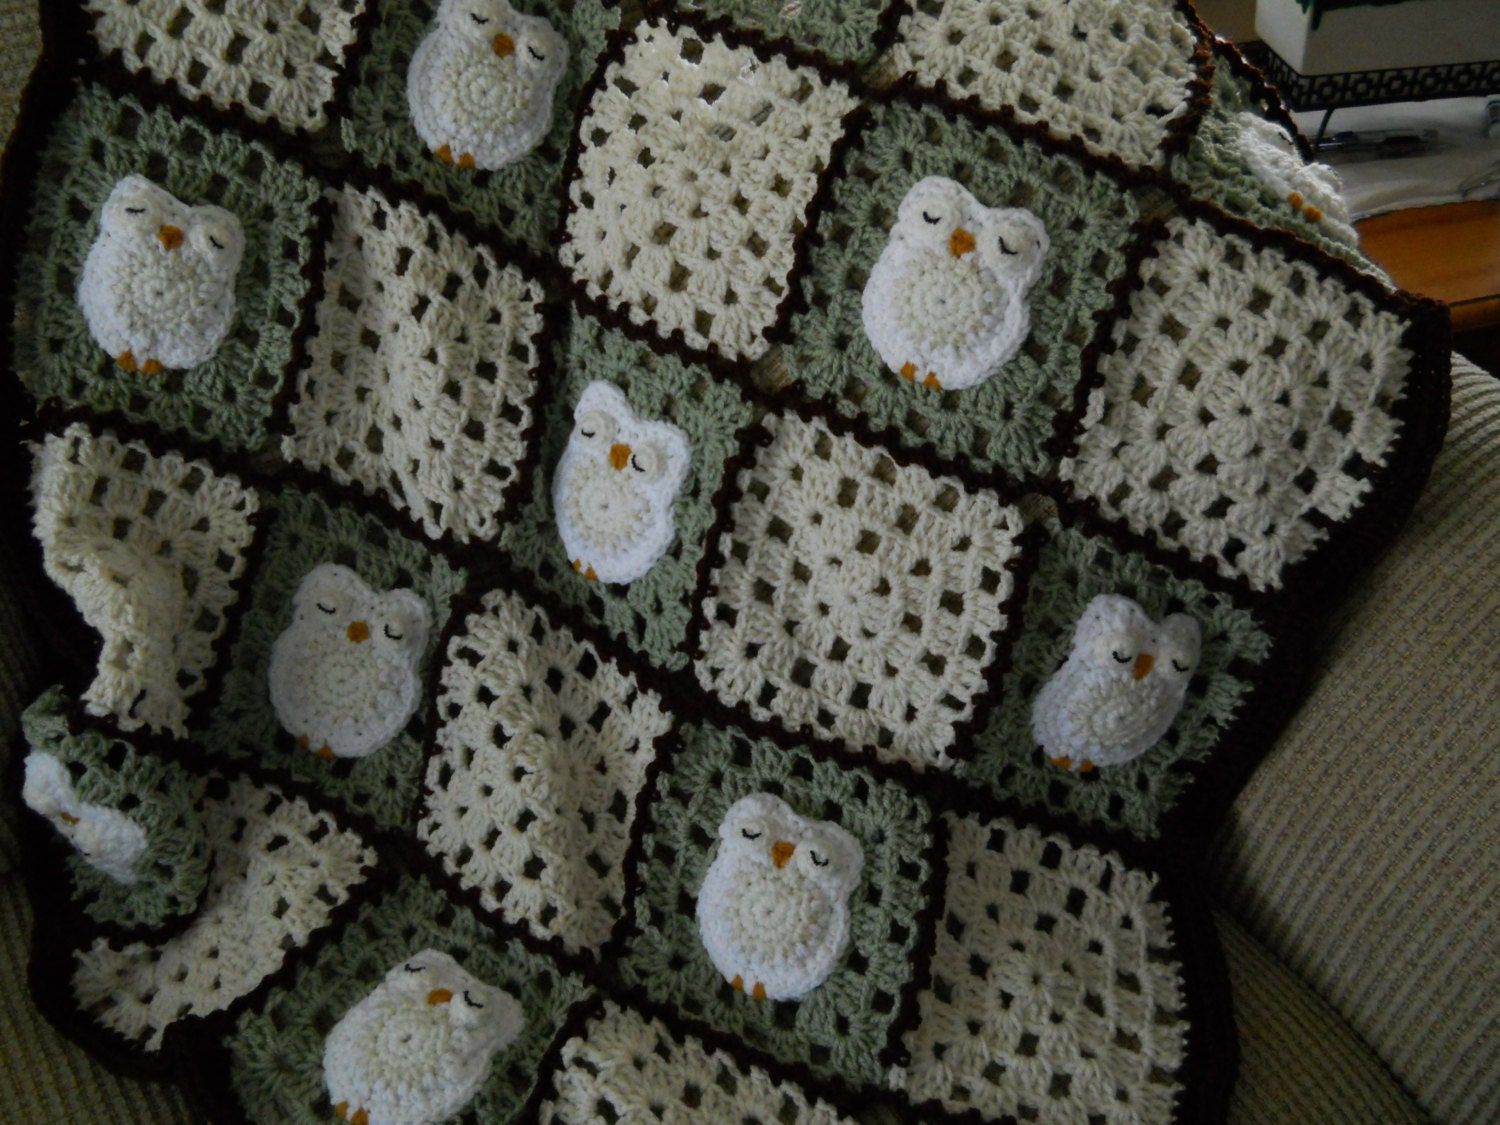 Crochet Owl Blanket : Crocheted blanket snowy owl baby shower gift by todaysyesterdaze